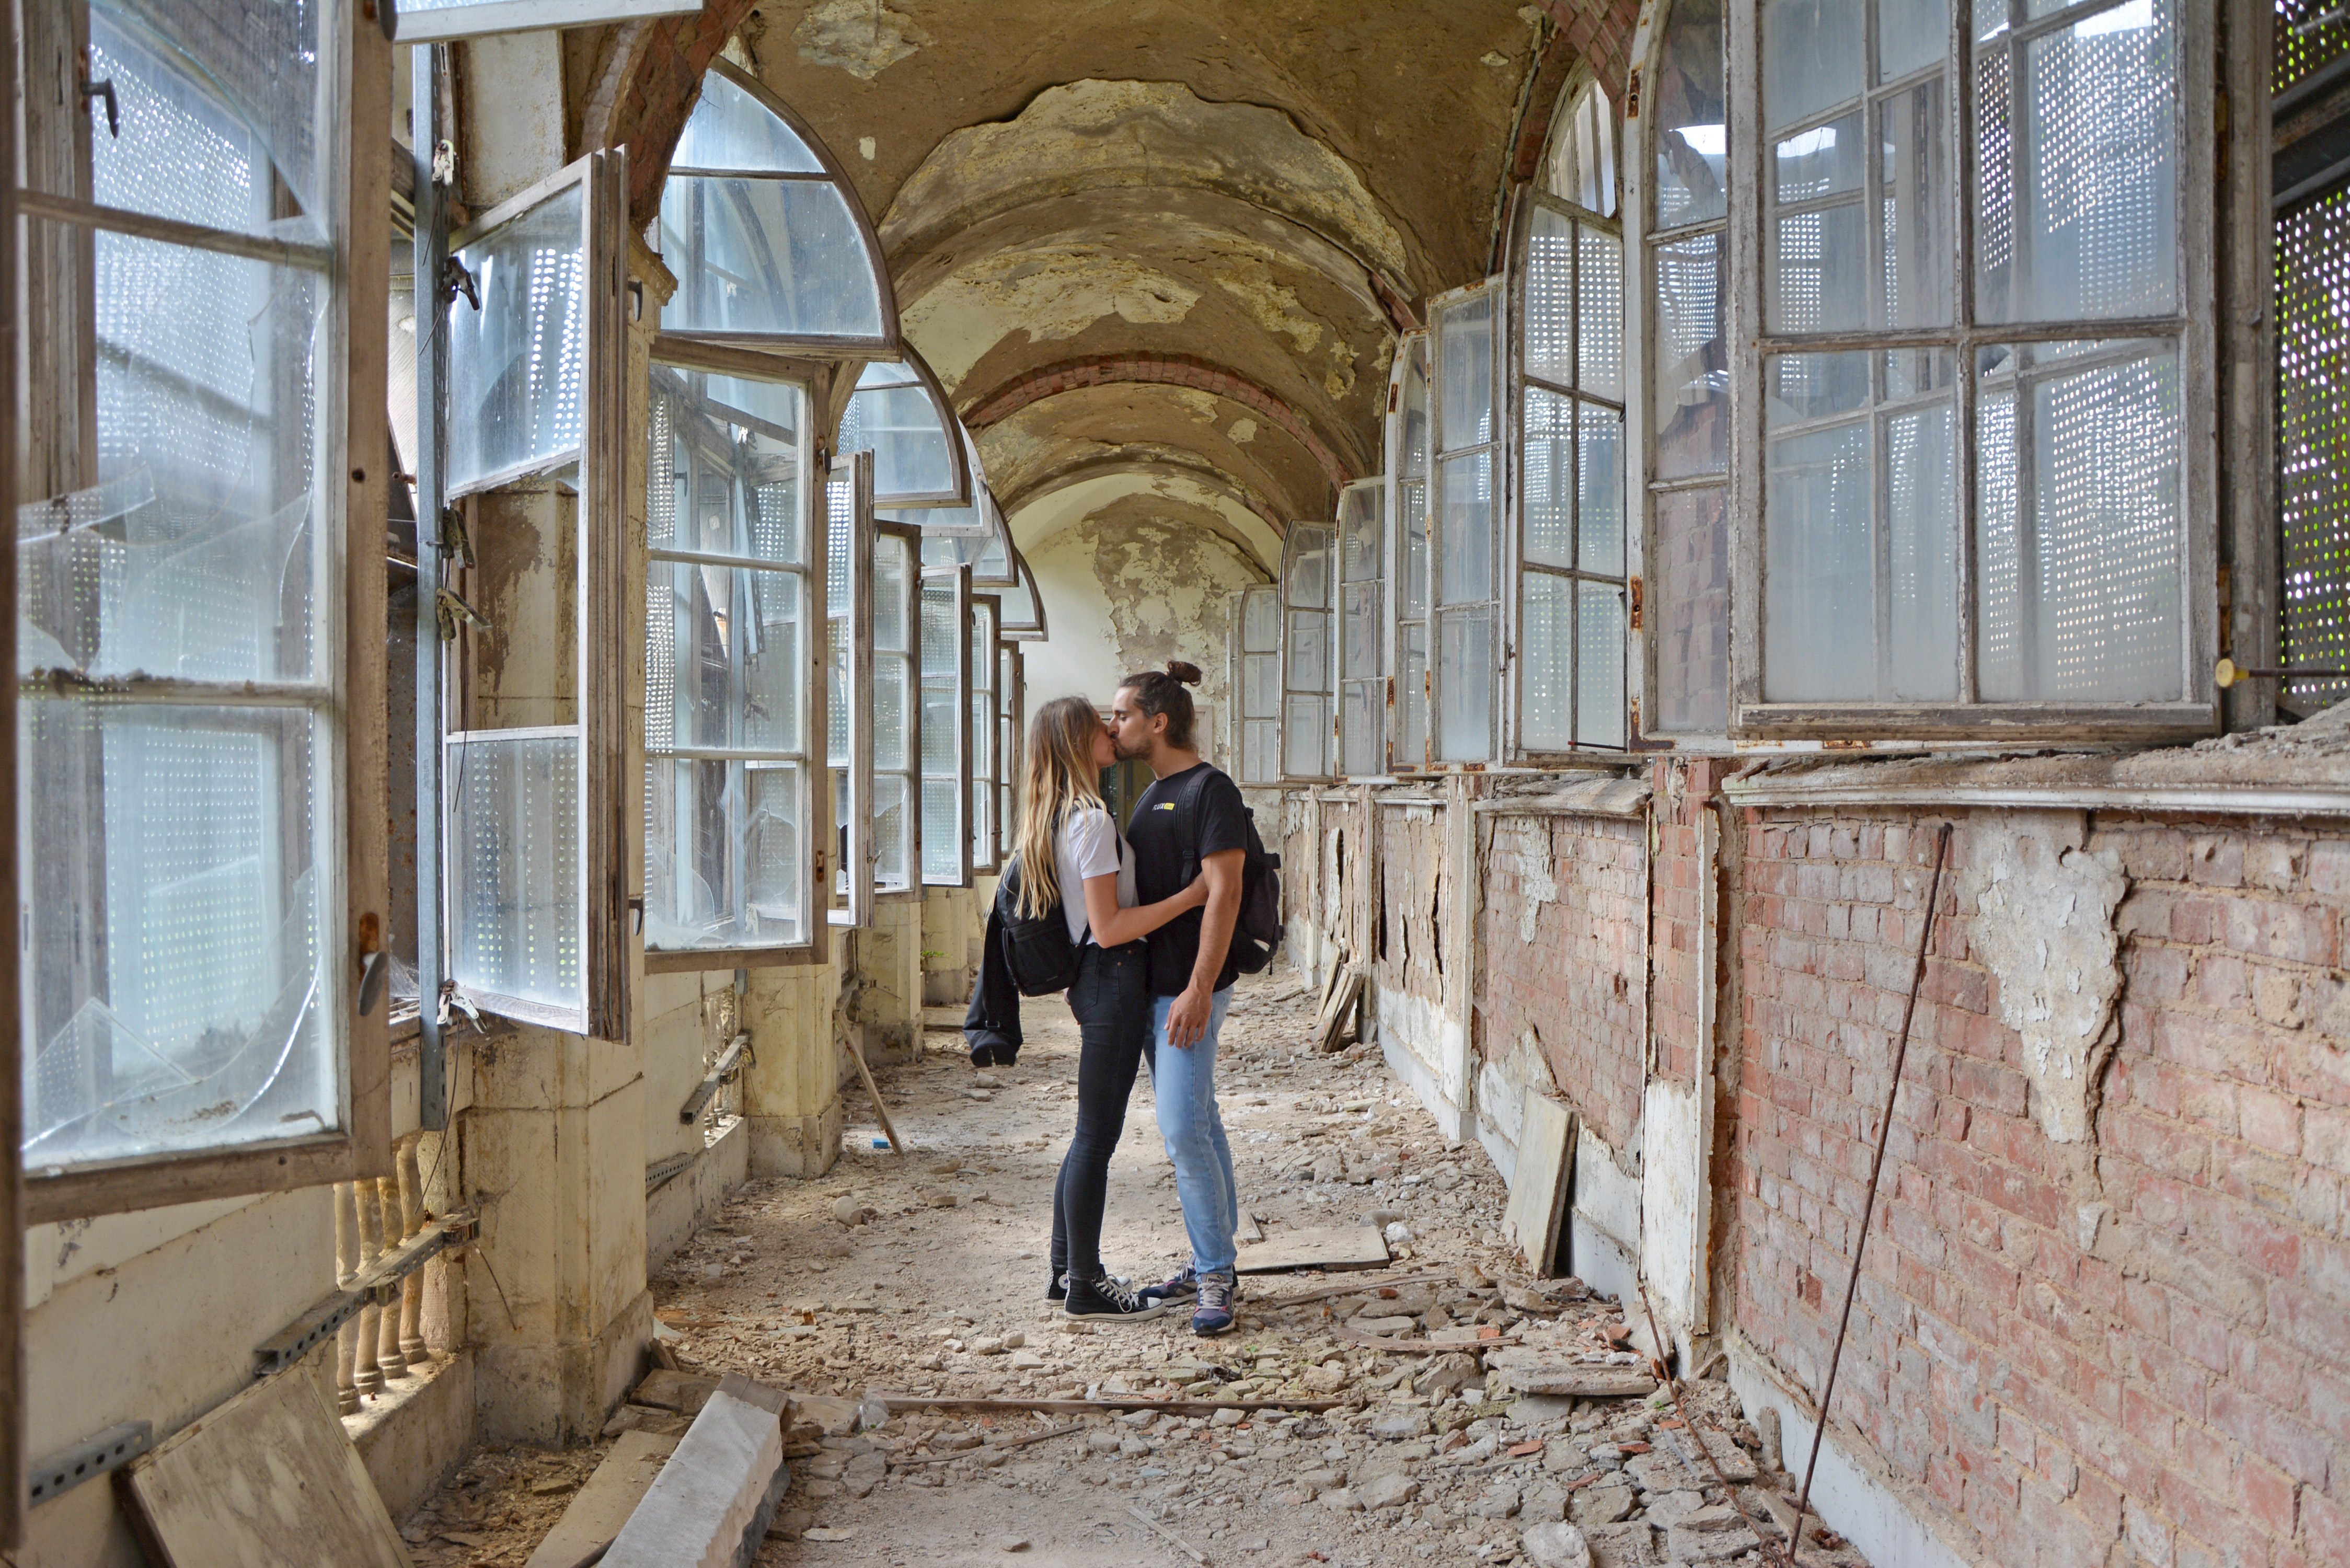 Abandoned Places in Berlin Waldhaus Buch Abandoned Sanatorium Garden Hall Love